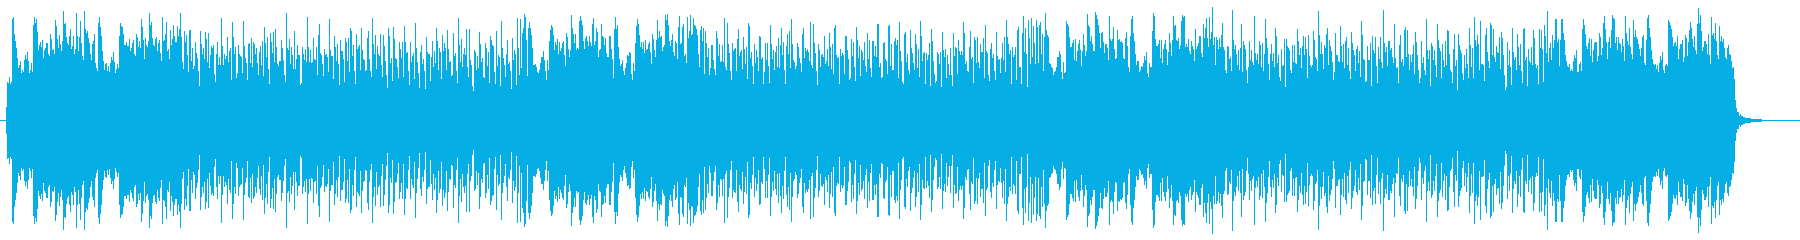 A song with dynamic tempo and song transition's reproduced waveform